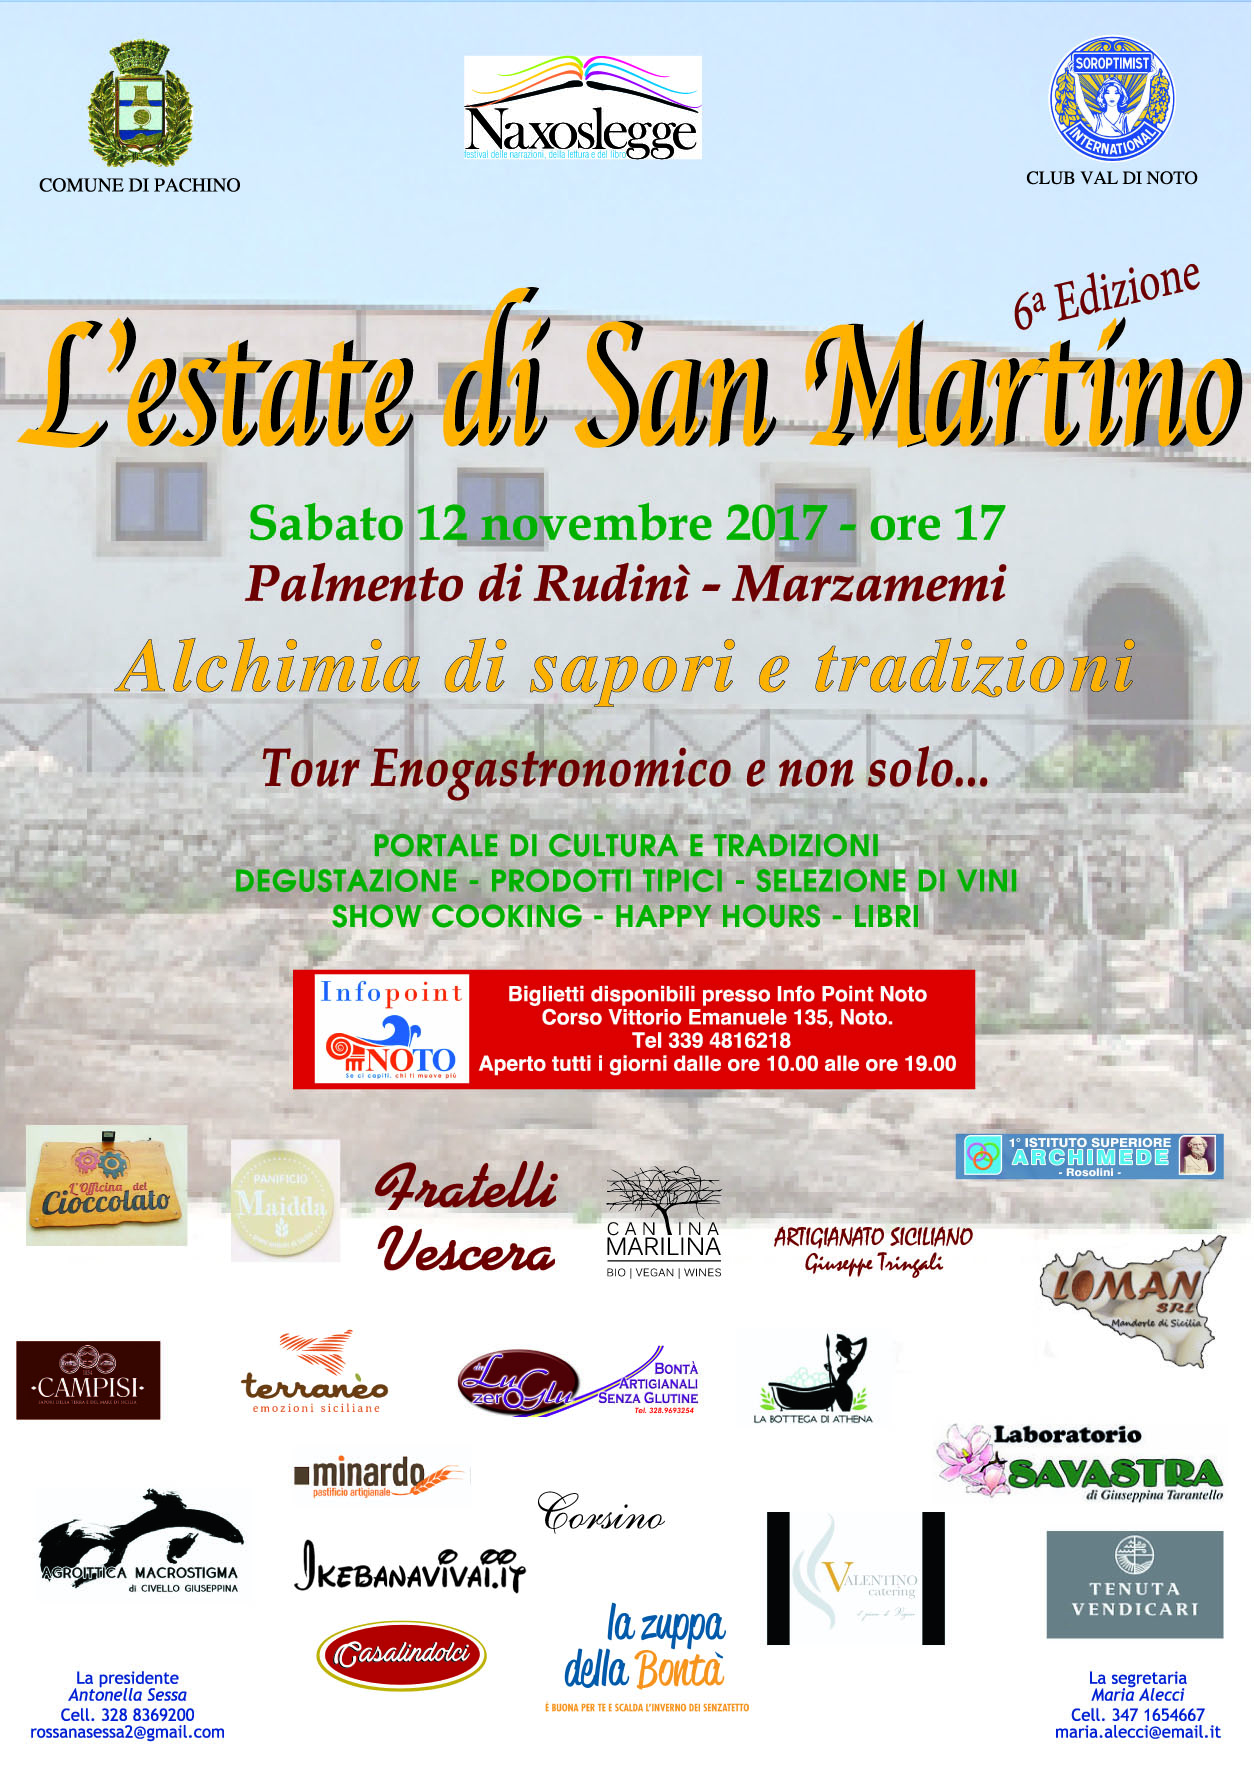 estatesanmartino2017-1579711268.jpg